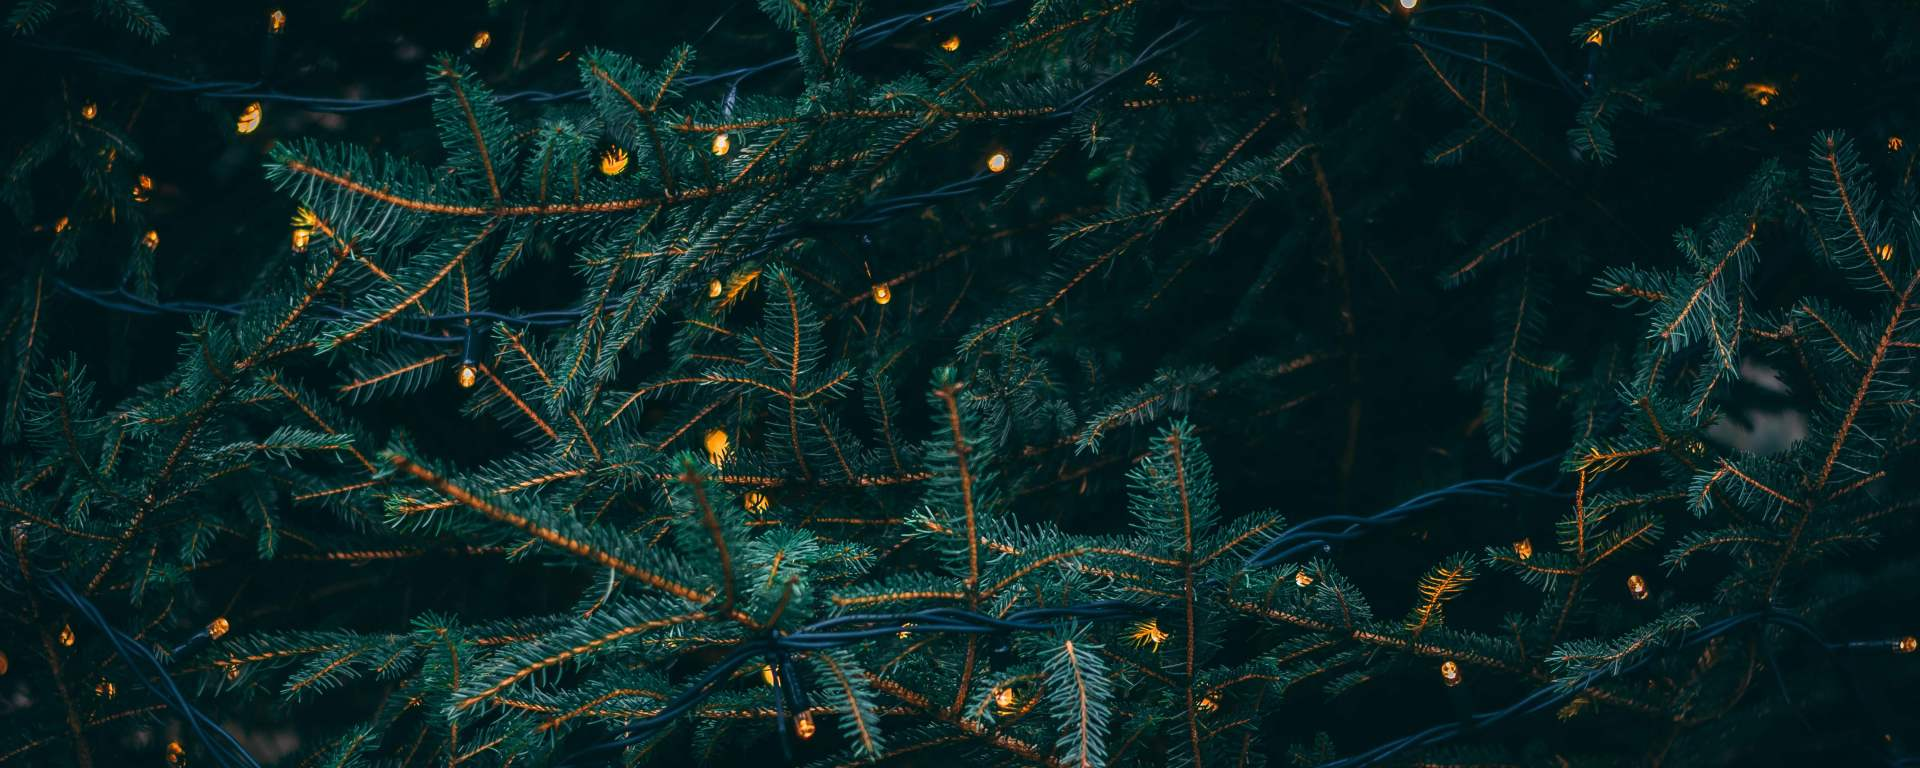 Tree foliage with fairy lights in it